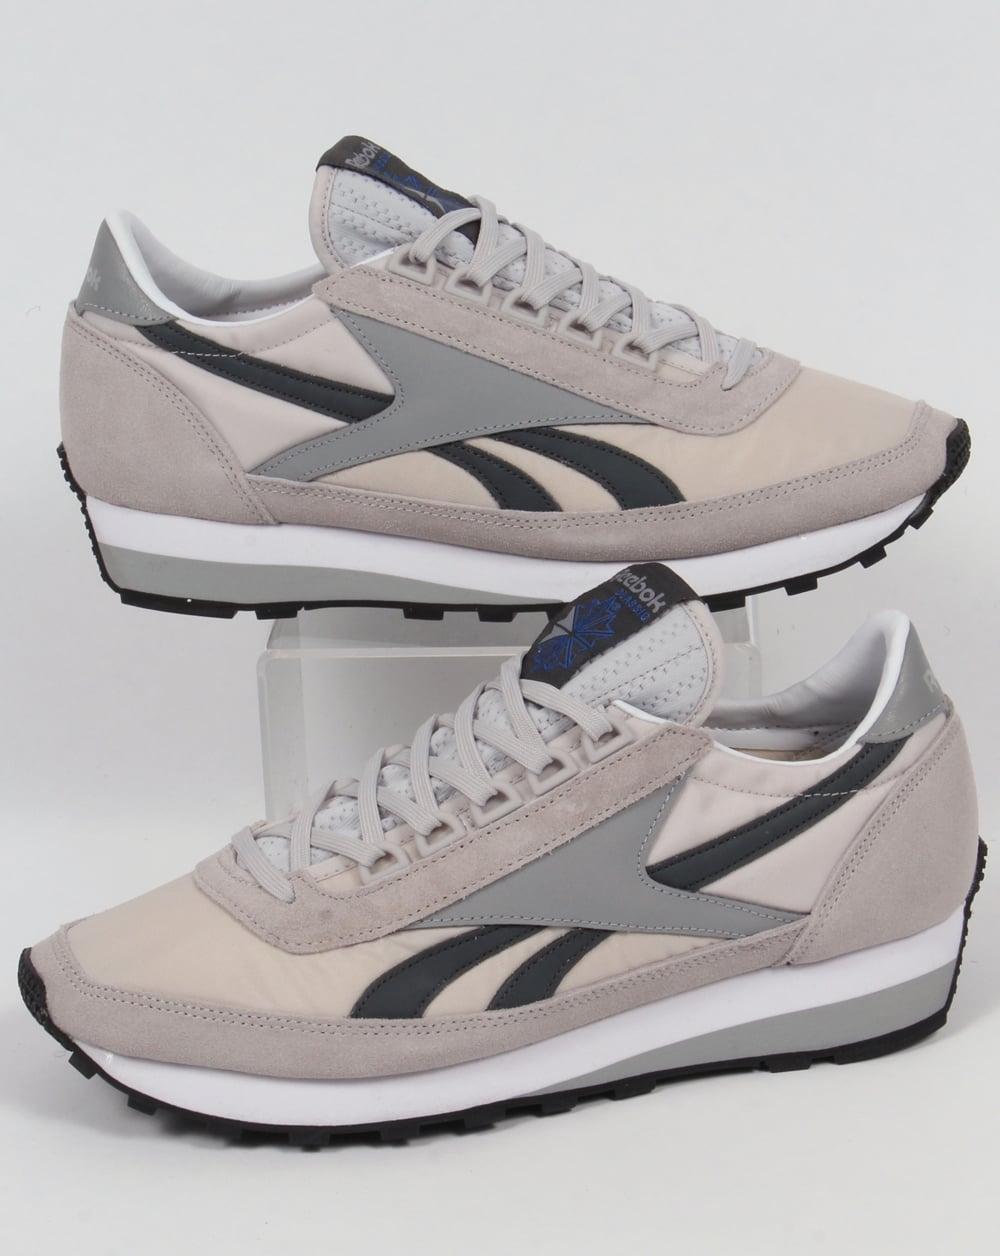 5c88a4c1ceb 80s reebok trainers